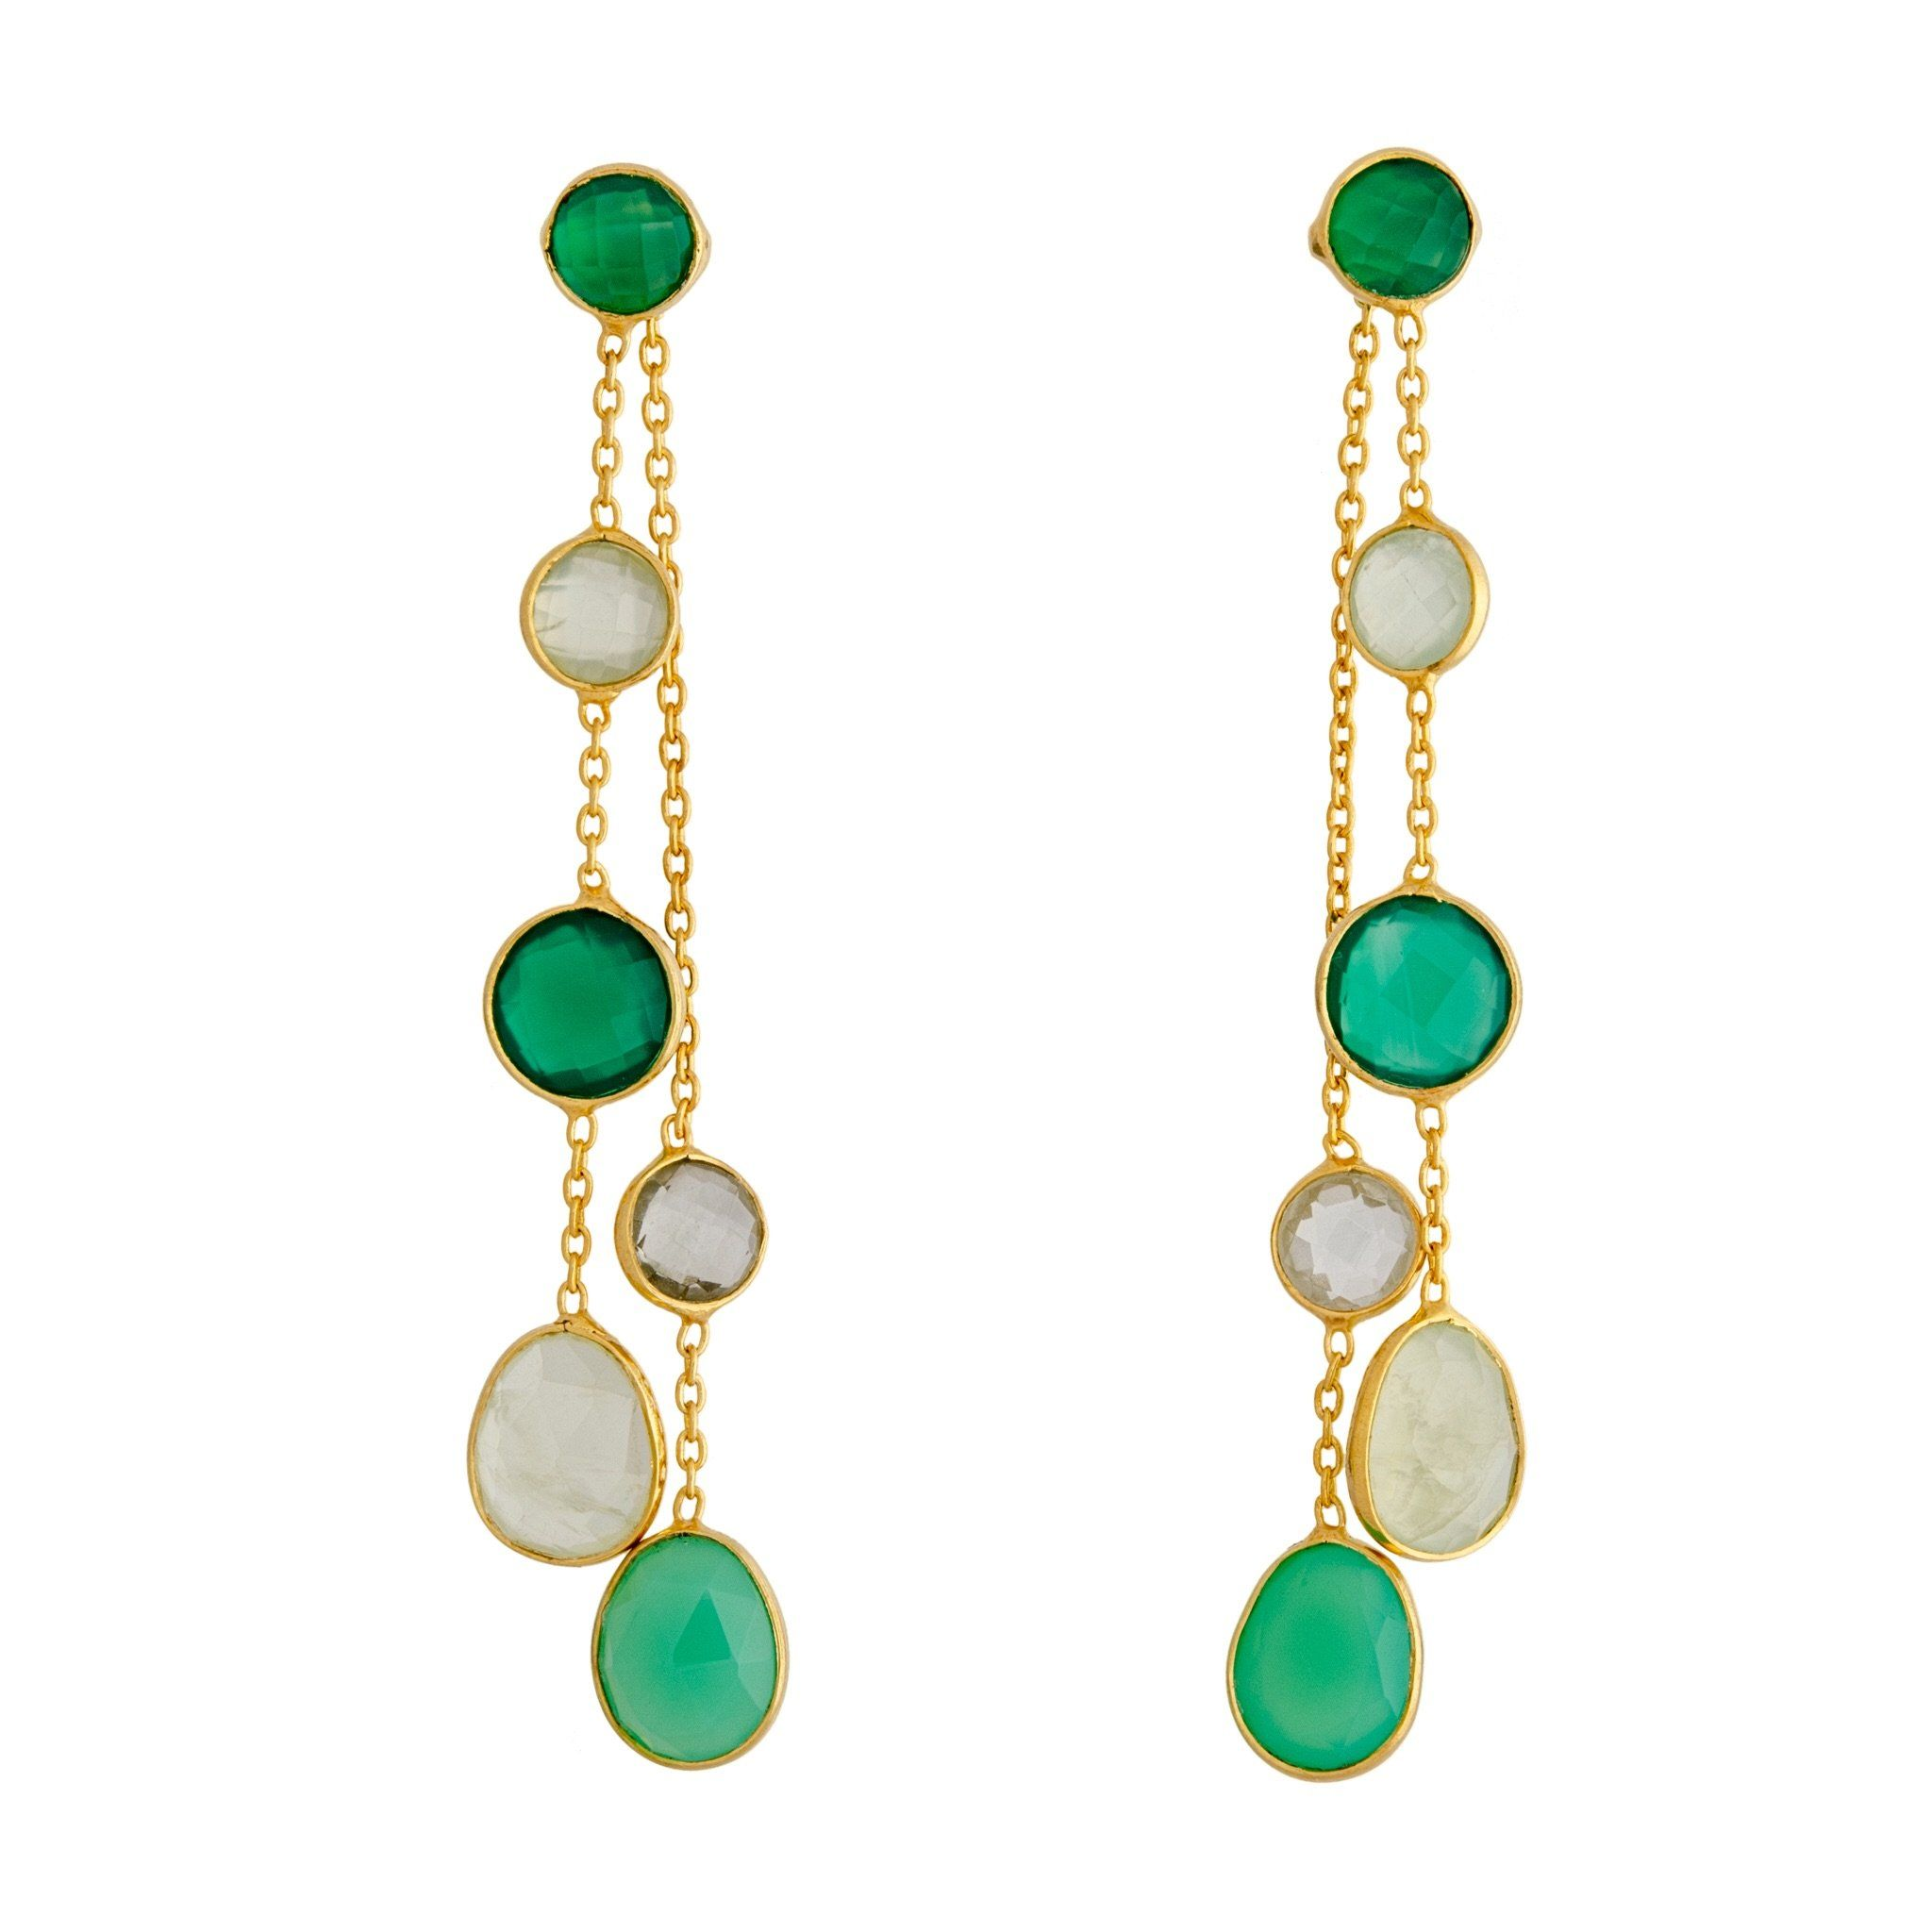 BUA green onyx earrings - MadamSiam